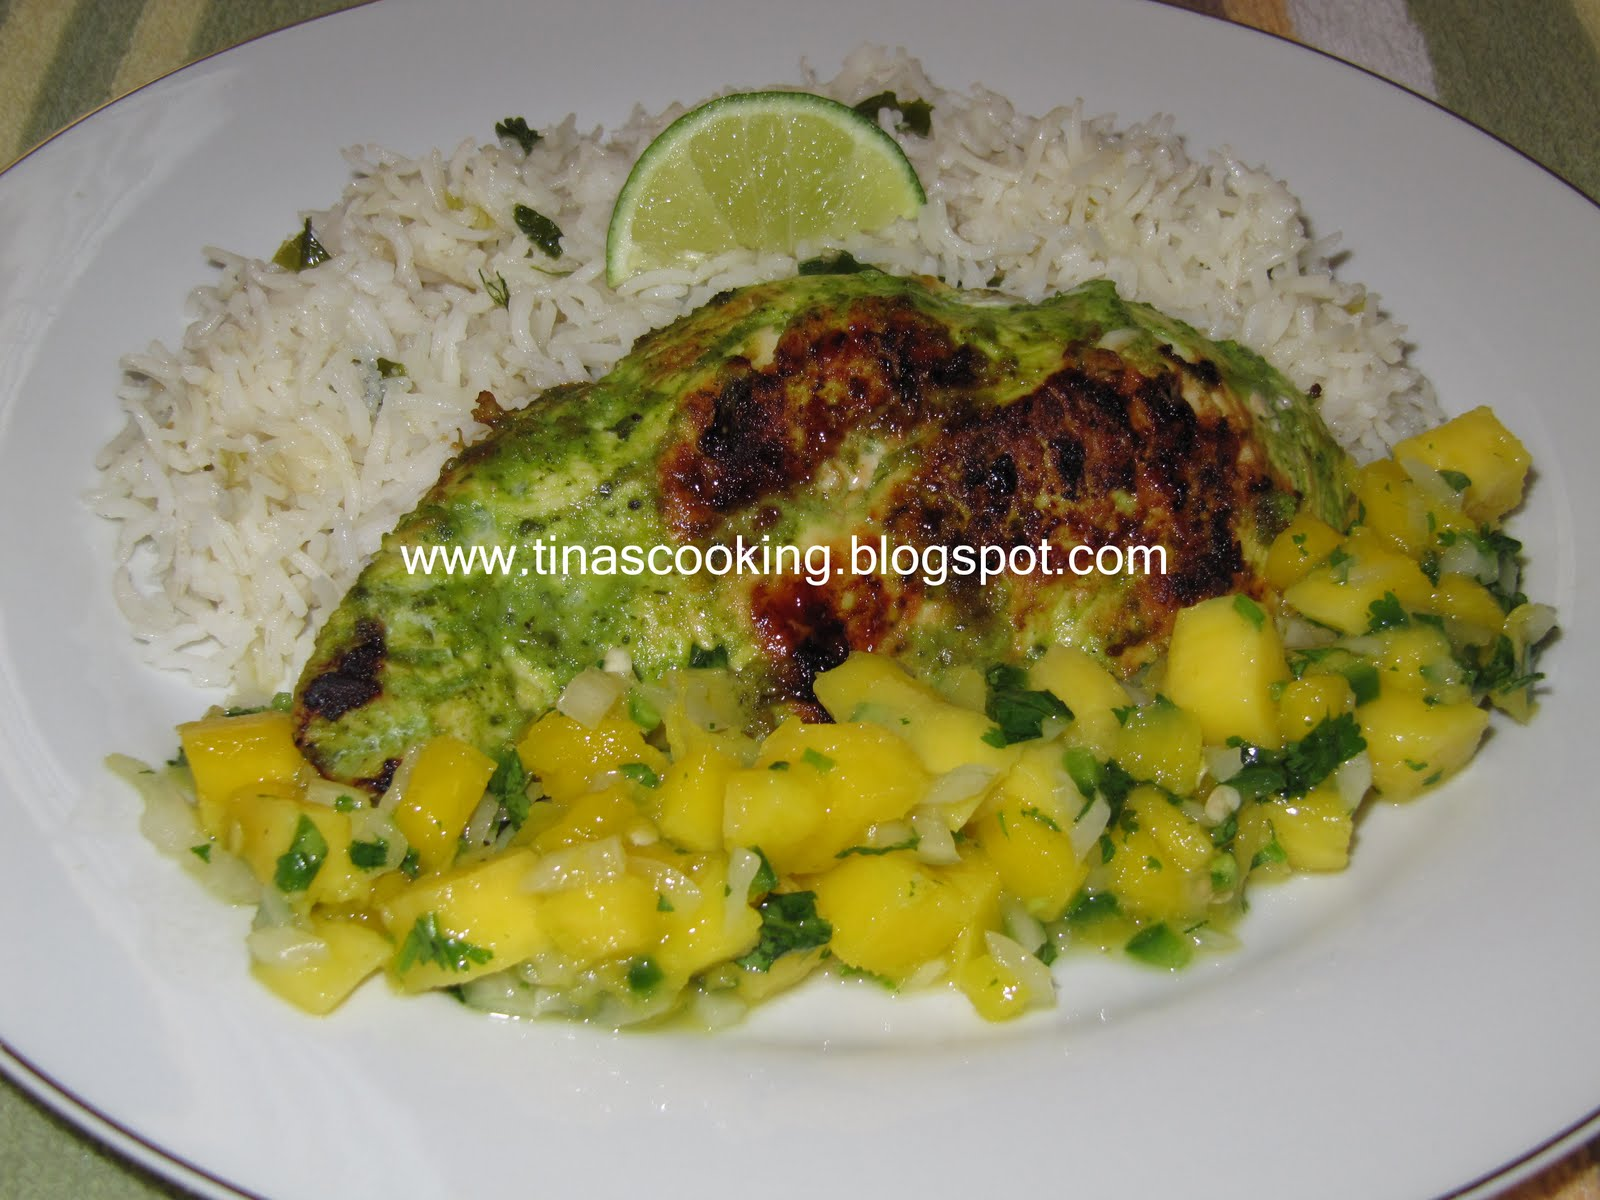 Tina's Cooking: Cilantro Lime Chicken With Scallion Rice And Mango ...